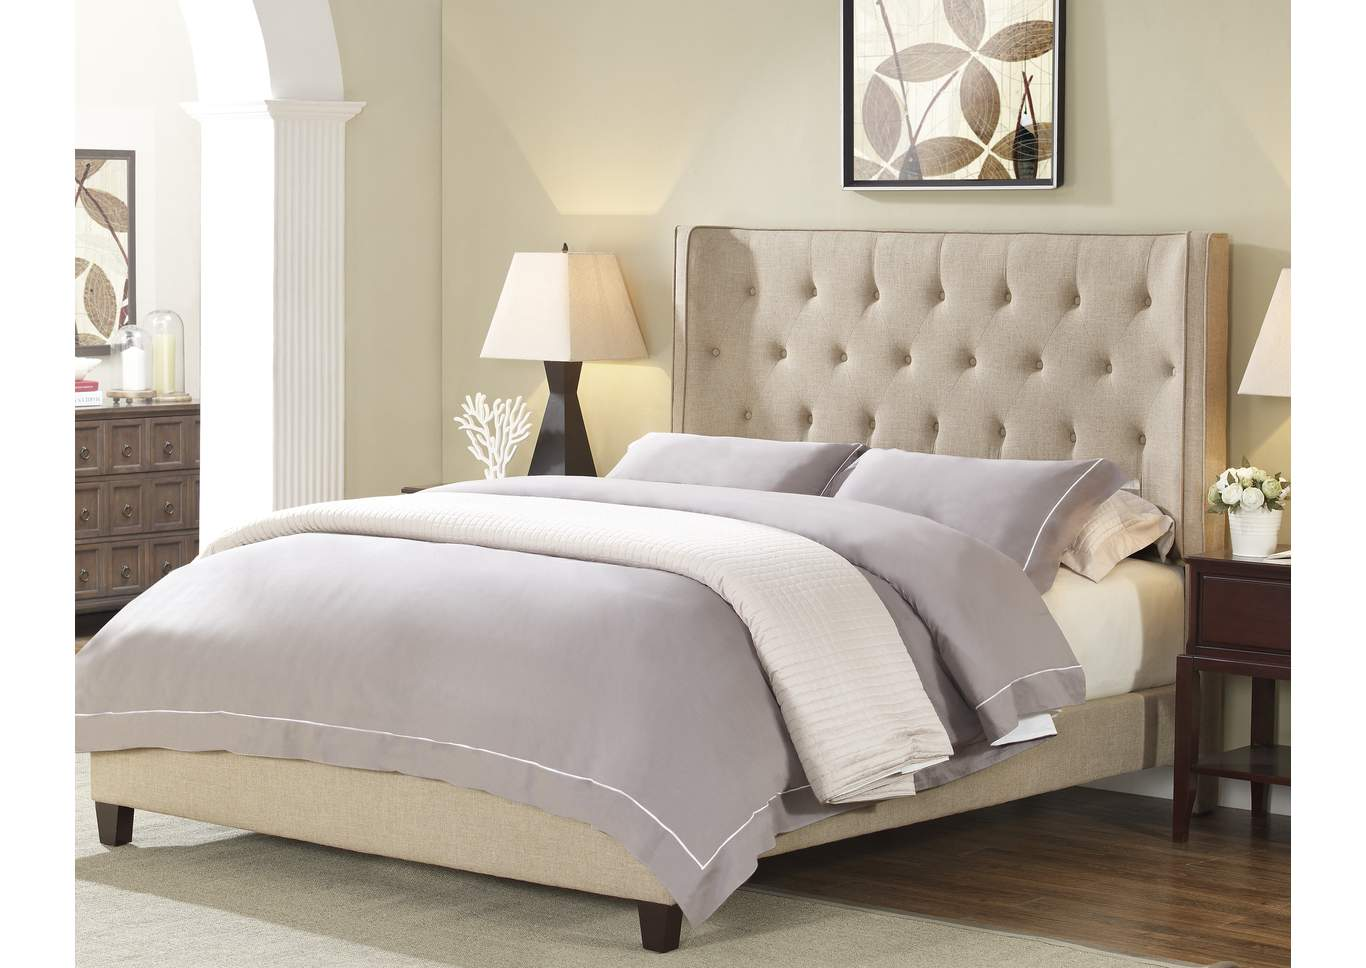 Mayes Upholstered Queen Bed,Crown Mark